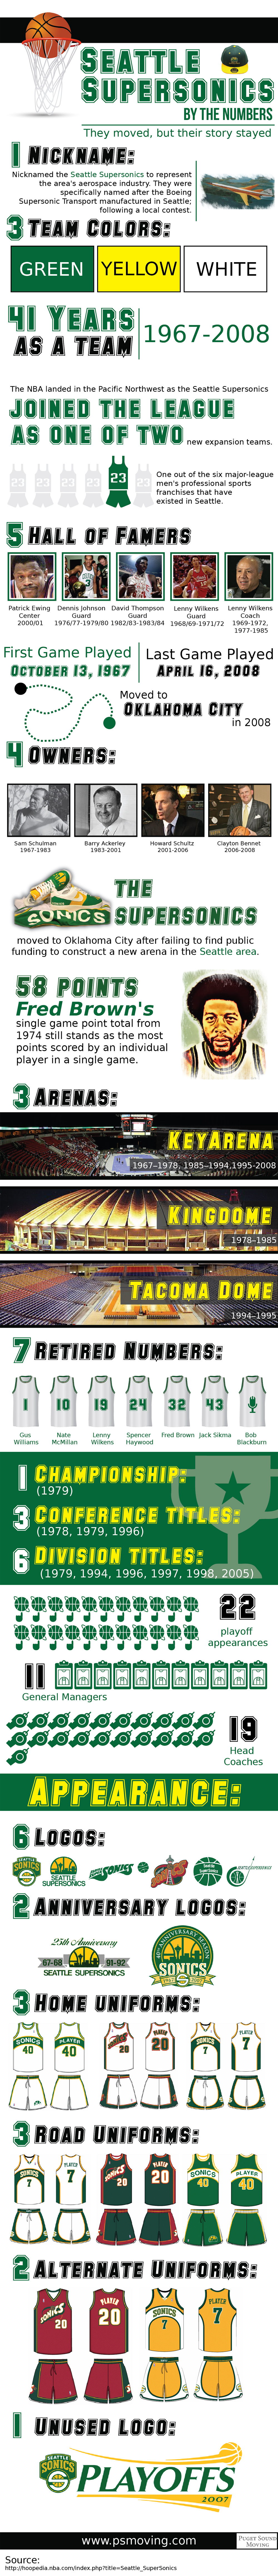 Seattle Supersonics Infographic